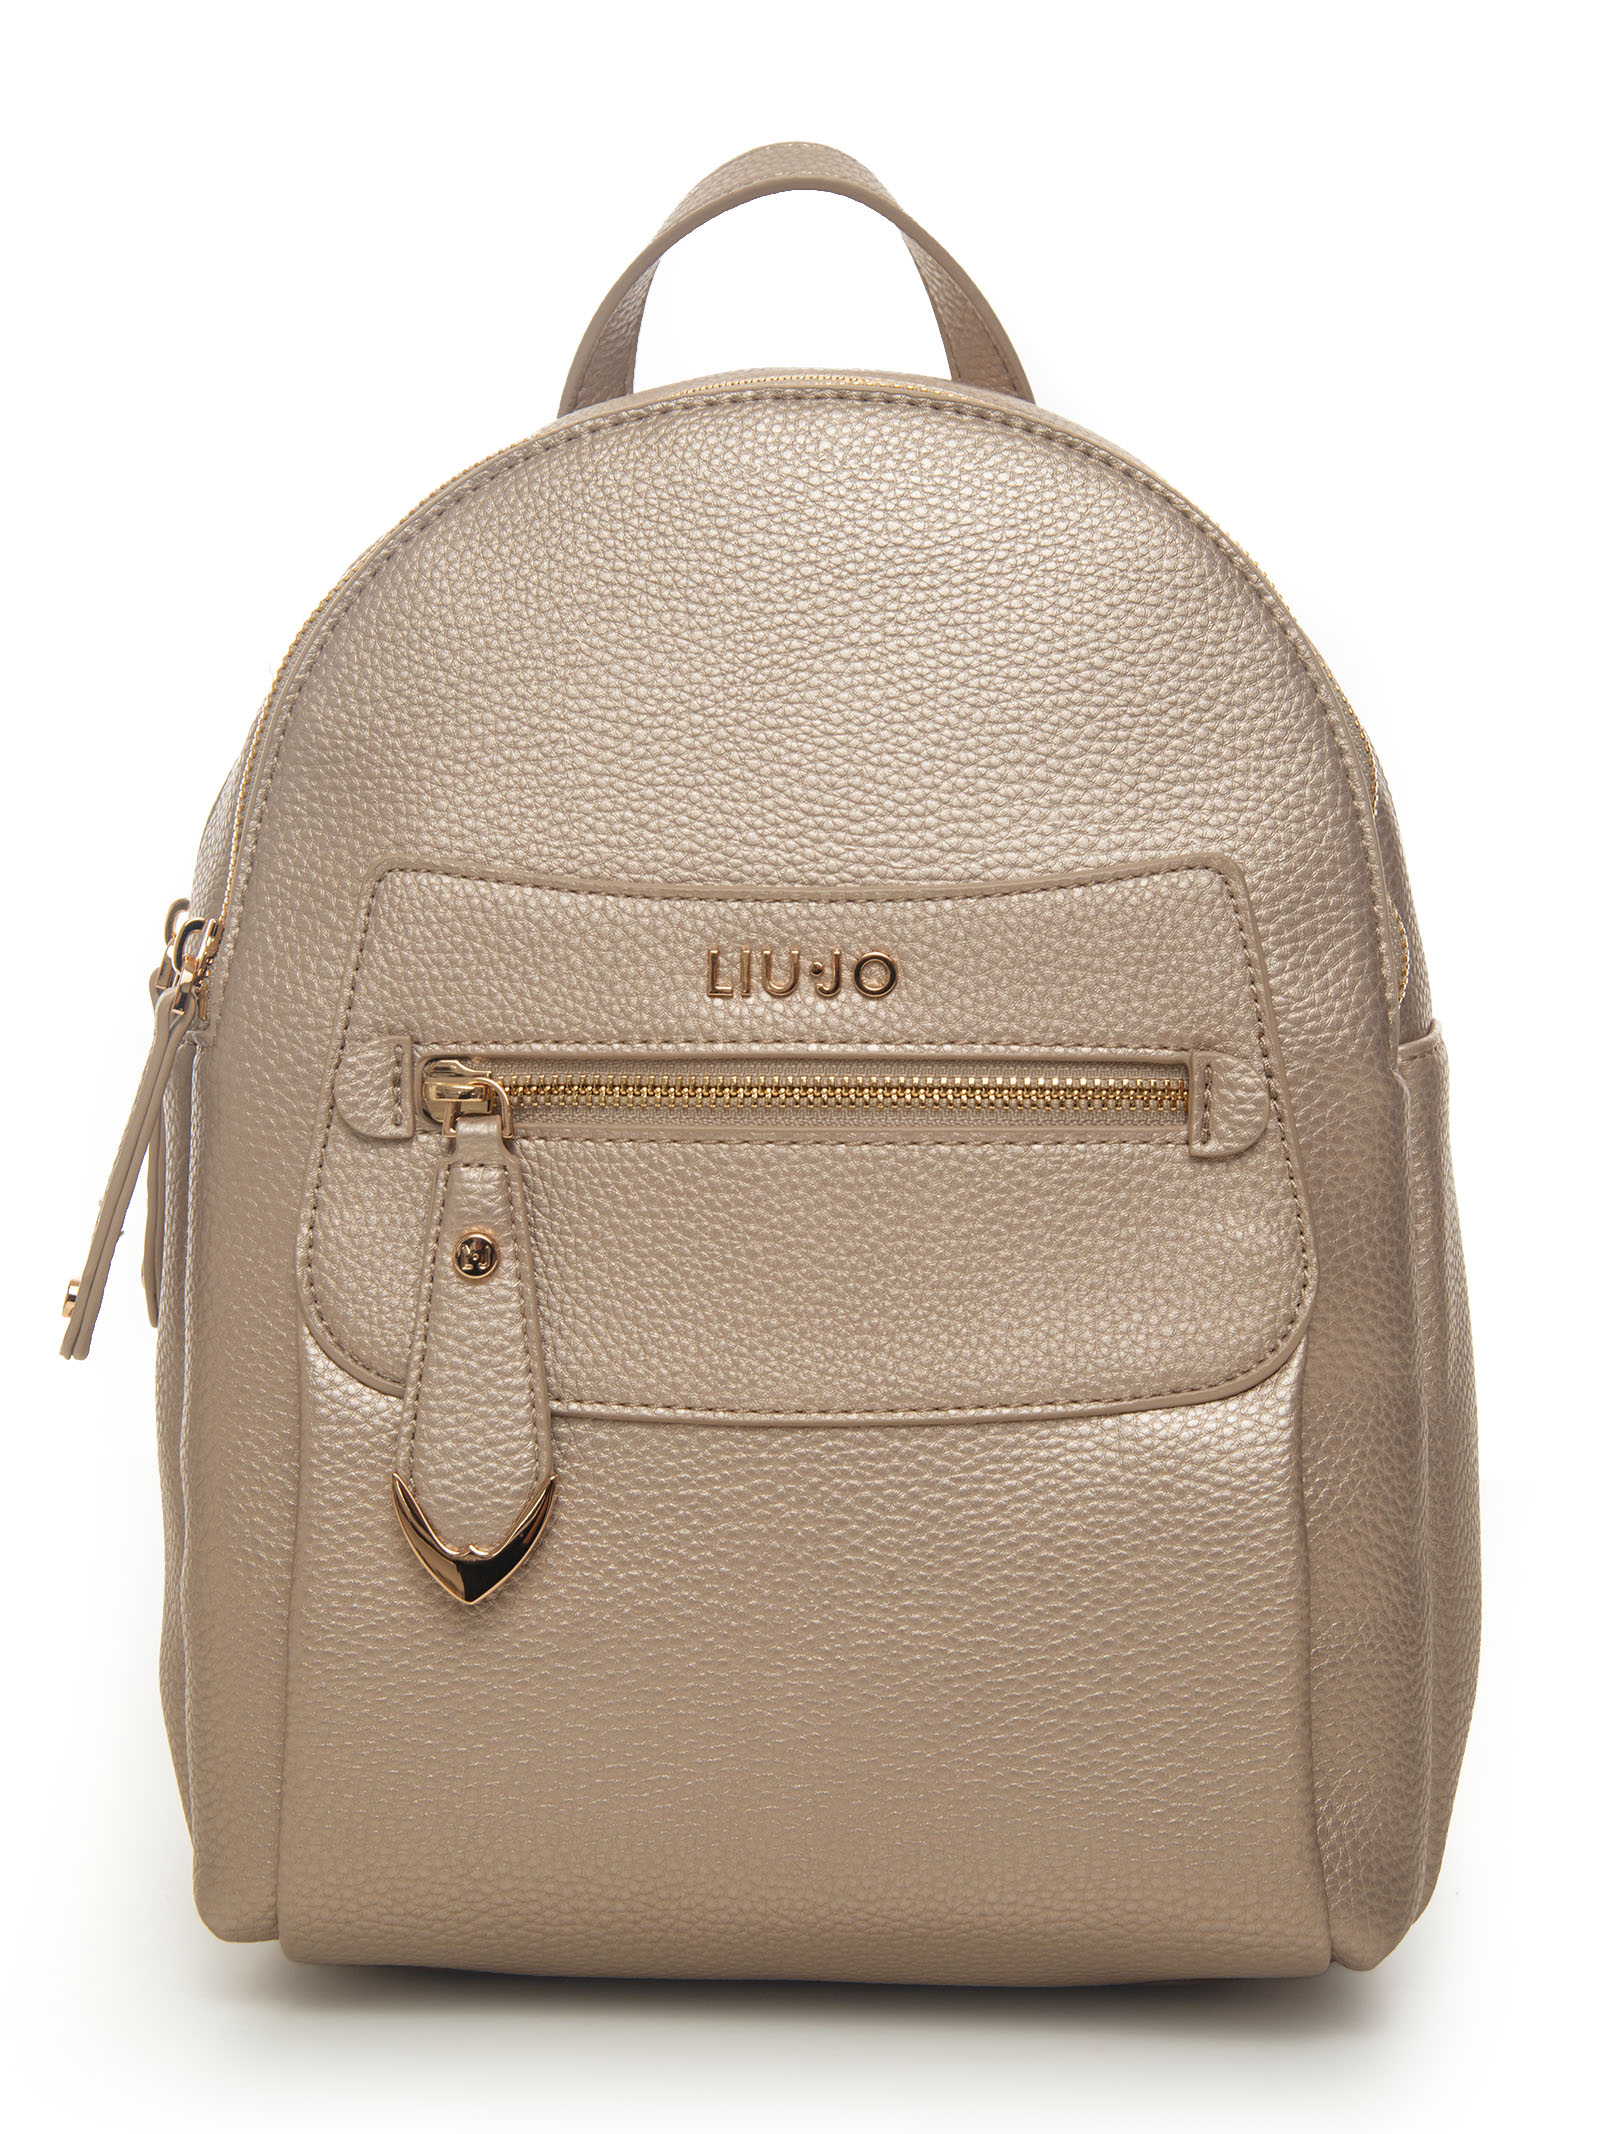 Liu •jo GENTILE BACKPACK GOLD POLYESTER WOMAN